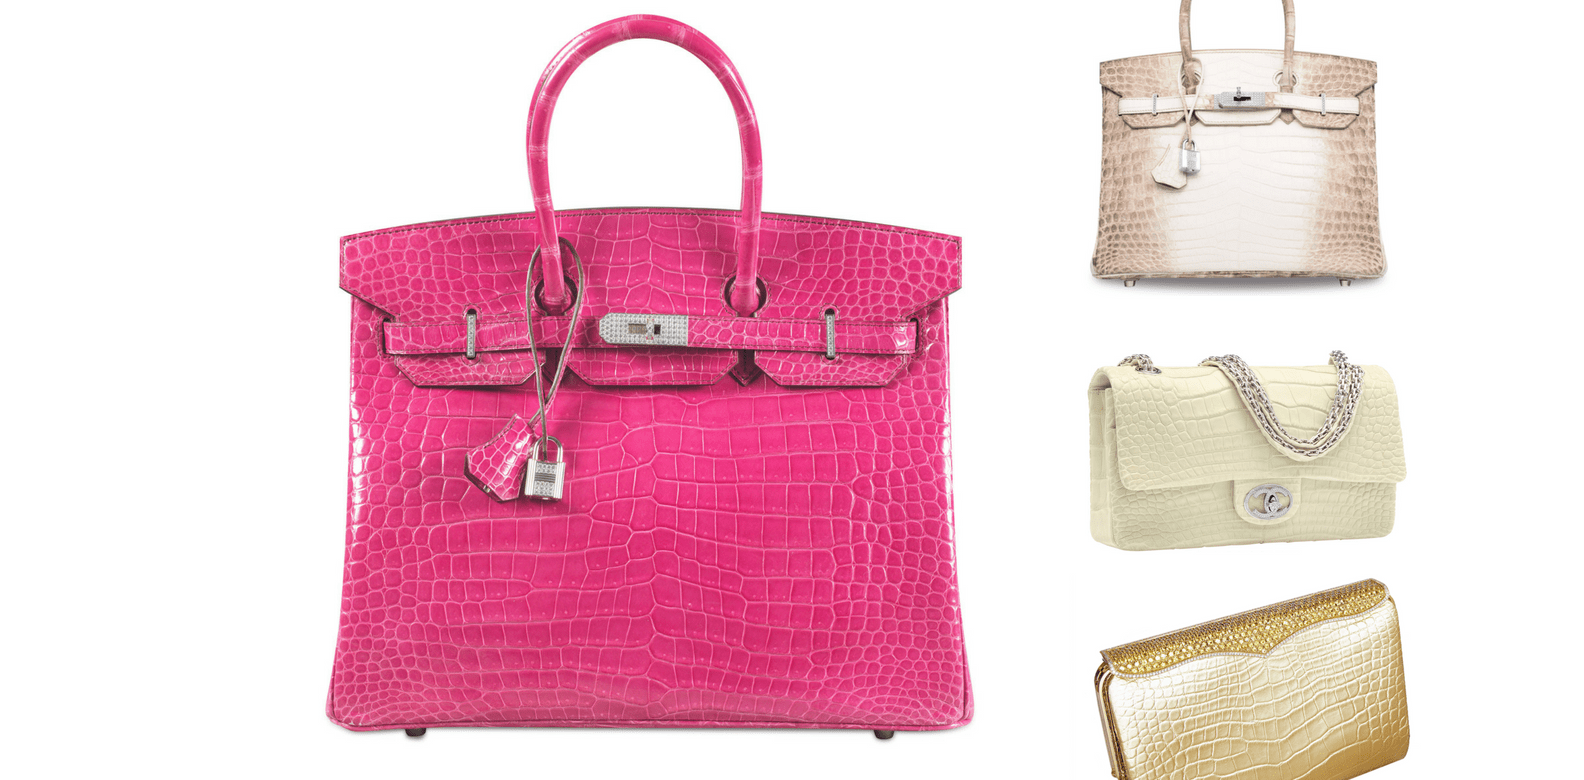 Rare And Expensive: 7 Limited Edition Handbags That Redefine Opulence